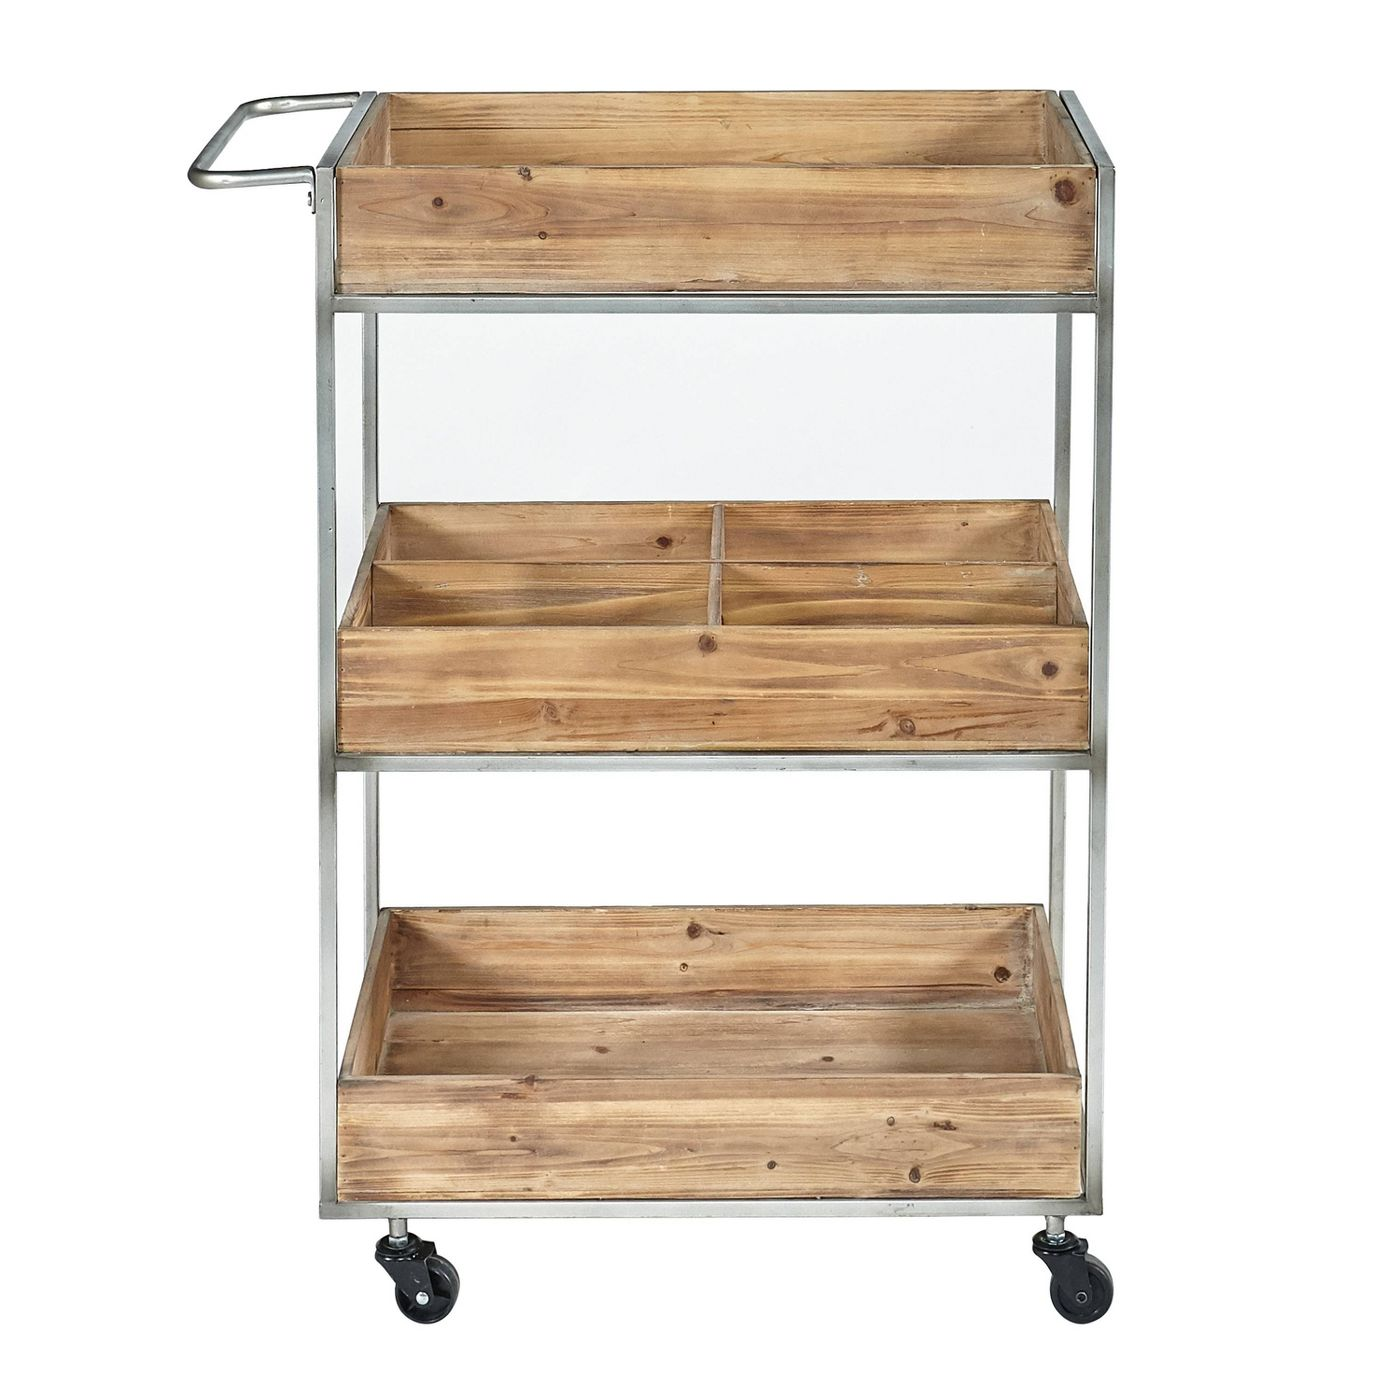 Buford Metal and Wood Cart Natural - Linon - image 2 of 8